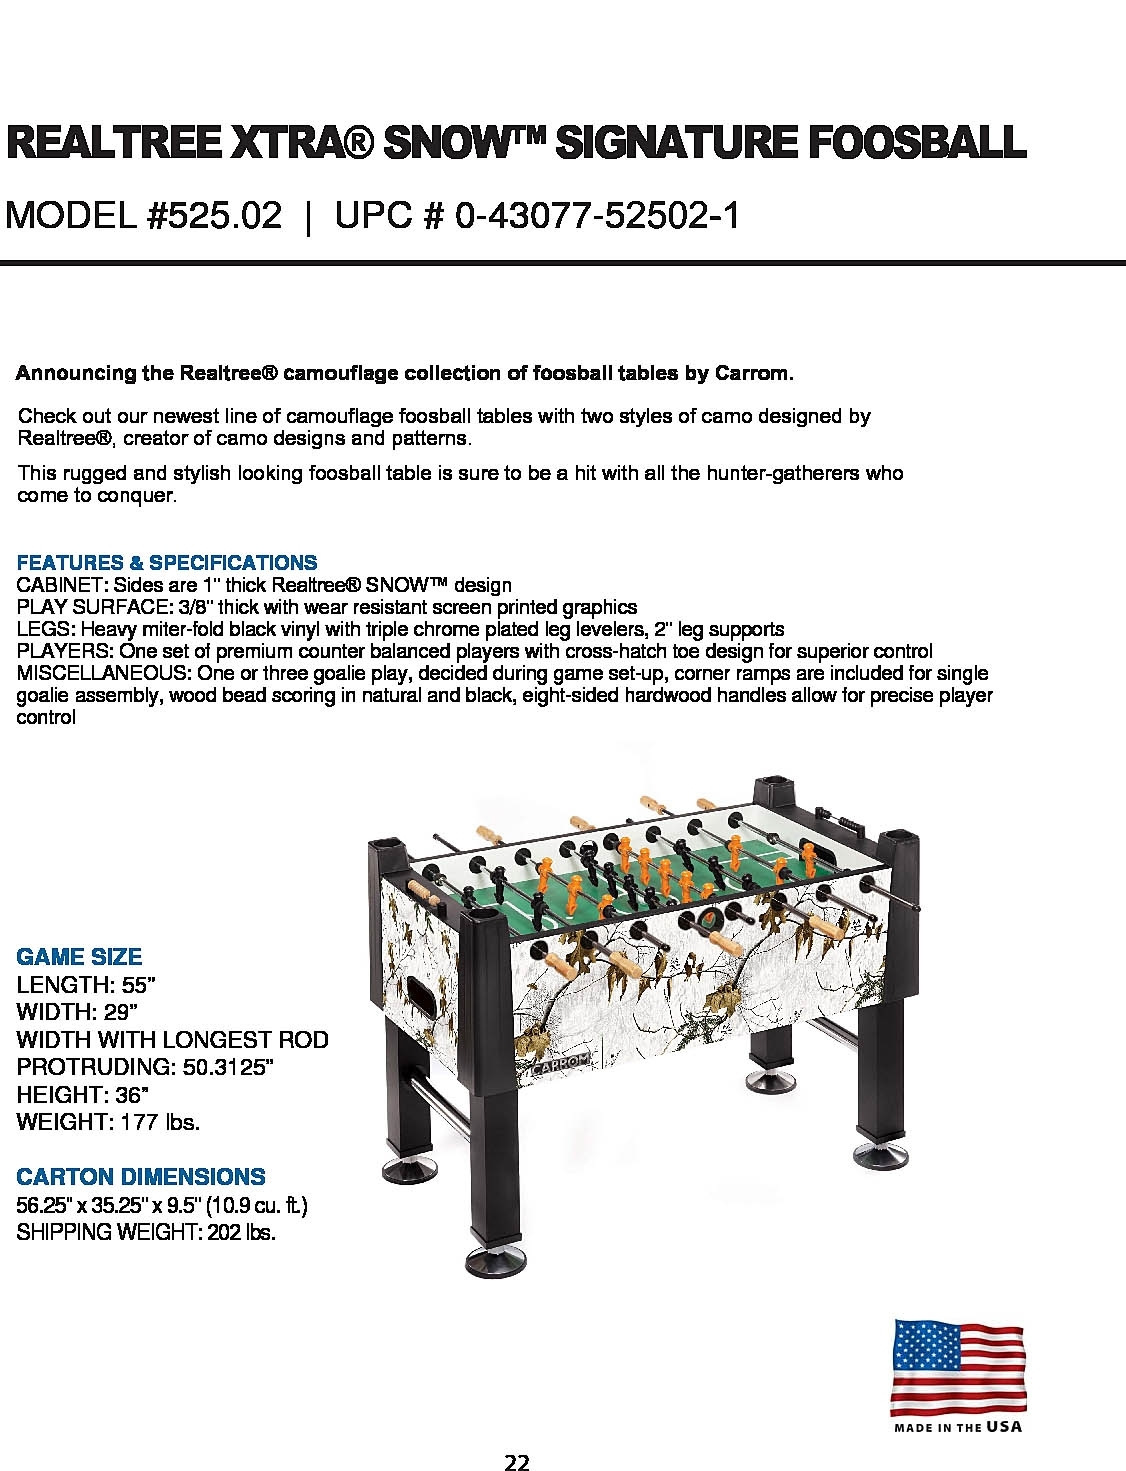 Carrom Signature Foosball Foosball Tables Sports Outdoors